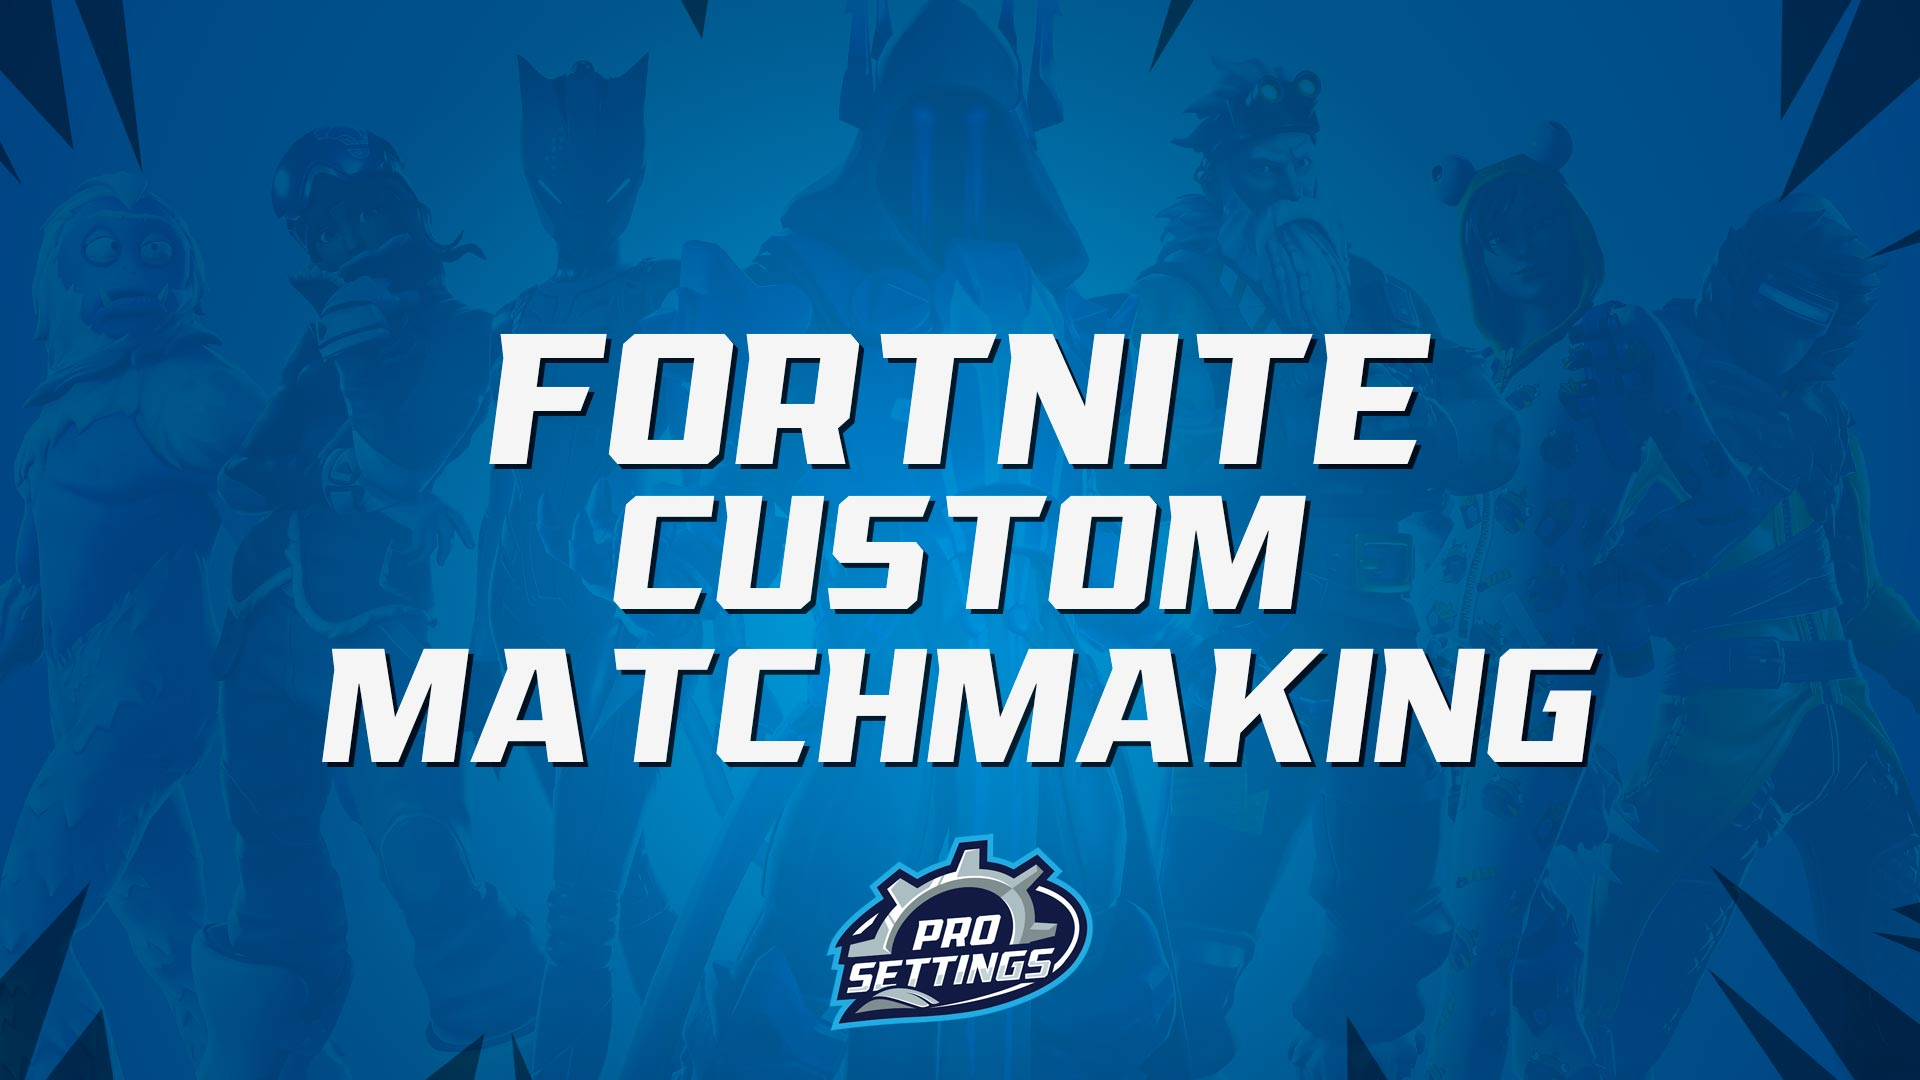 How To Get Fortnite Custom Matchmaking Key In 2019 Prosettings Com - fortnite custom matchmaking key